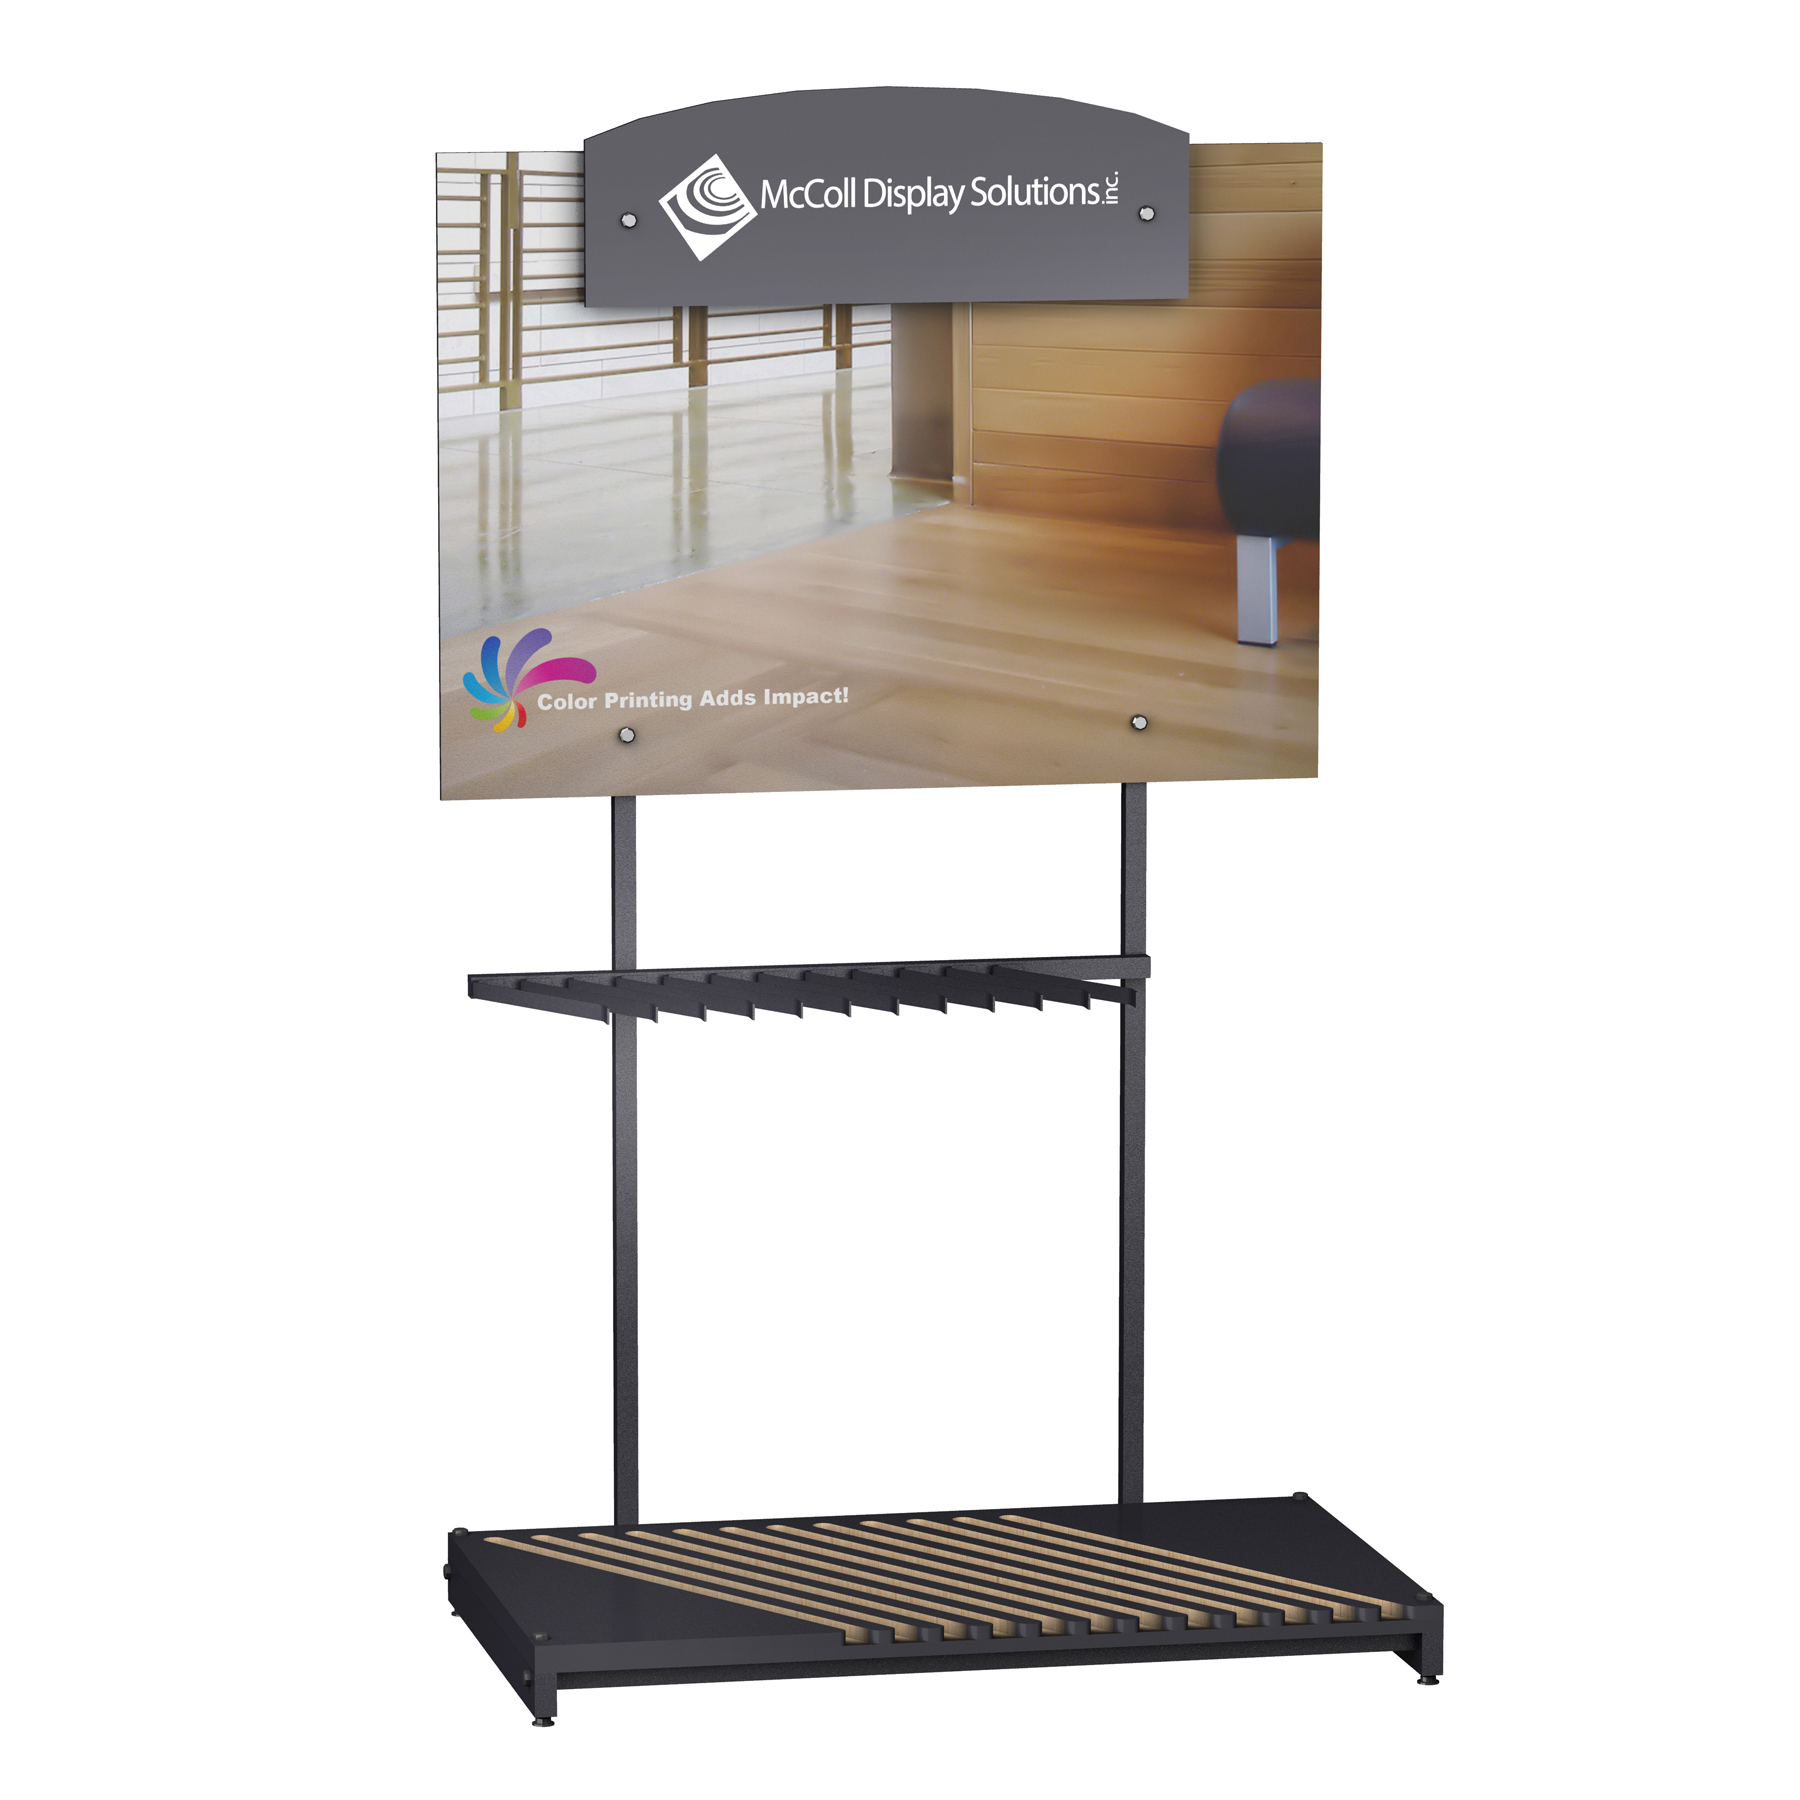 Hardwood Display CD101 Sturdy Frame Holds Wood and Laminate Planks Securely For Great Visibility with Option of Signage